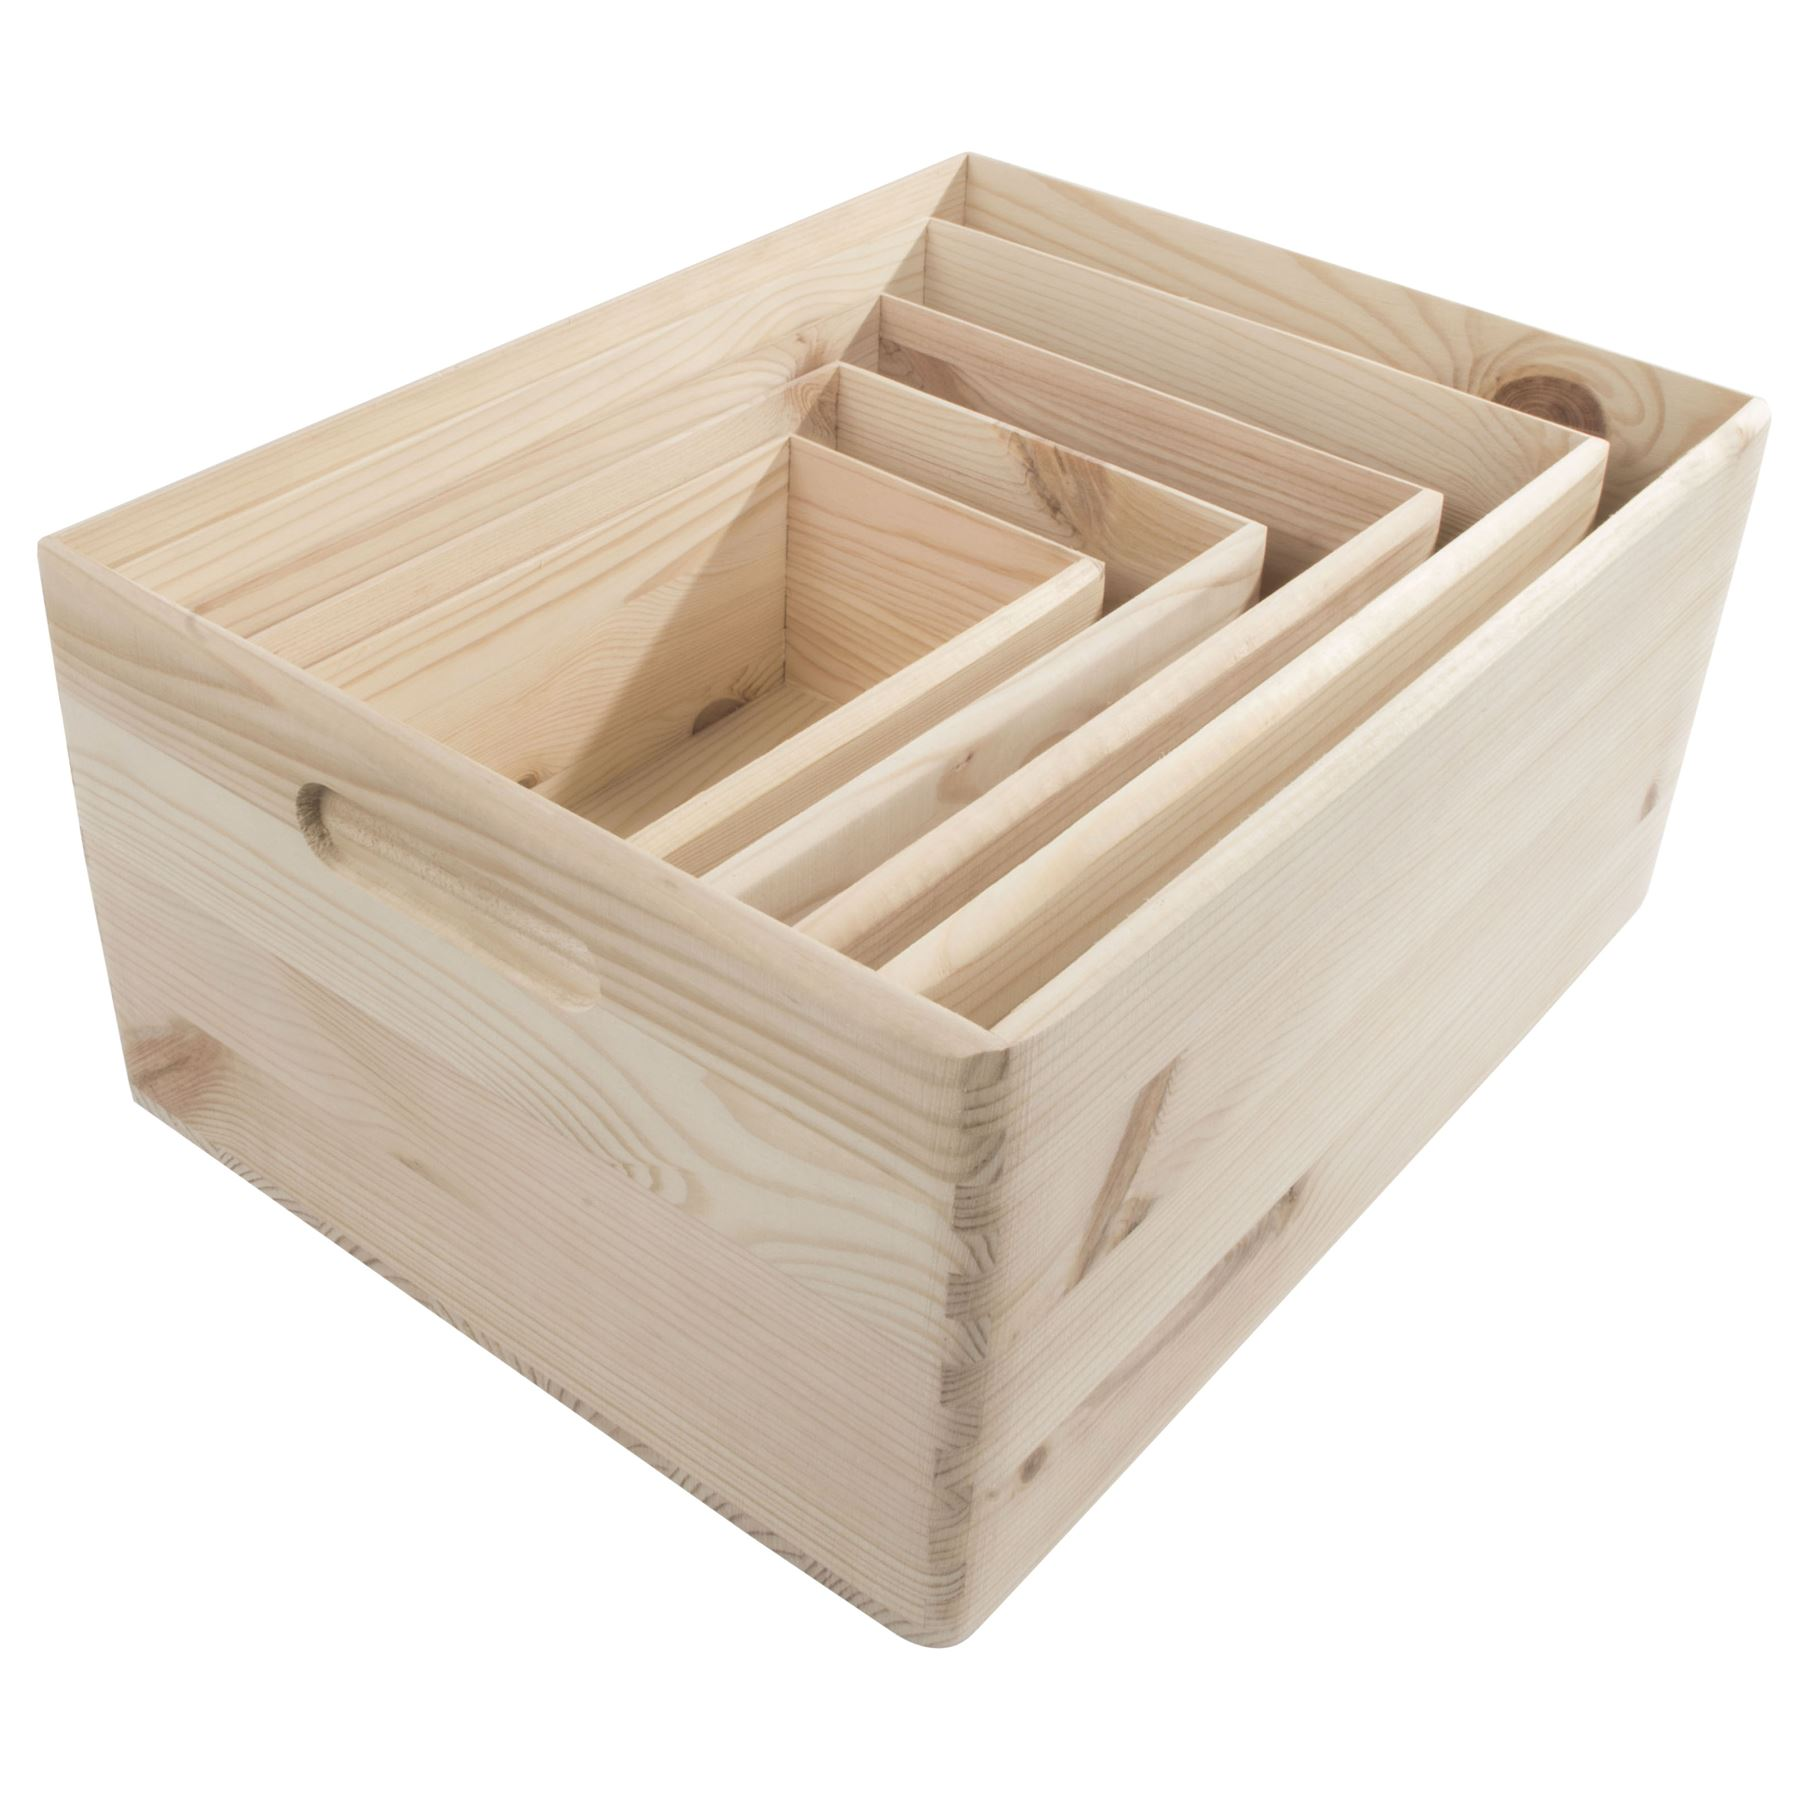 Home Decor Storage Boxes Bins Sundries Household Tray Wood ...